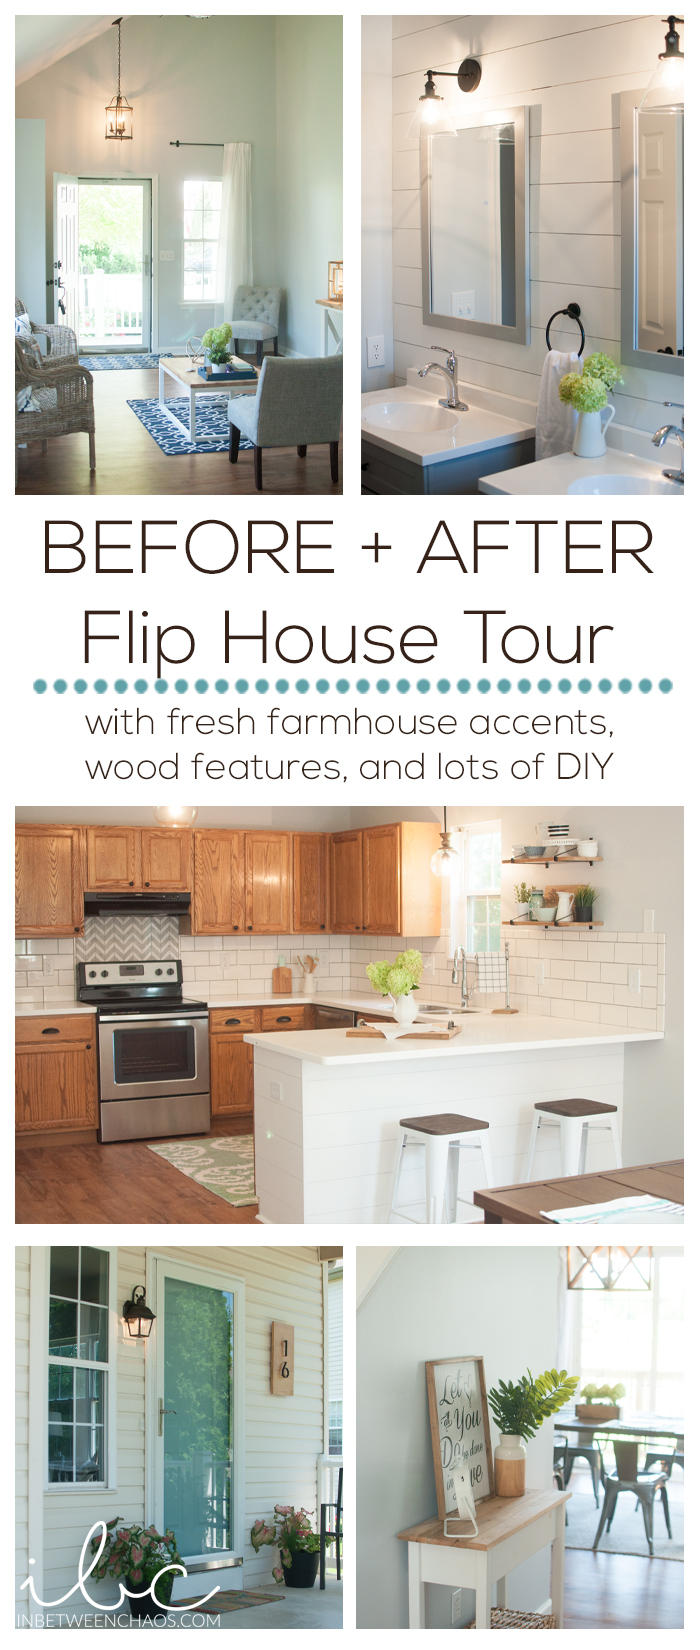 Before & After Flip House Tour | inbetweenchaos.com